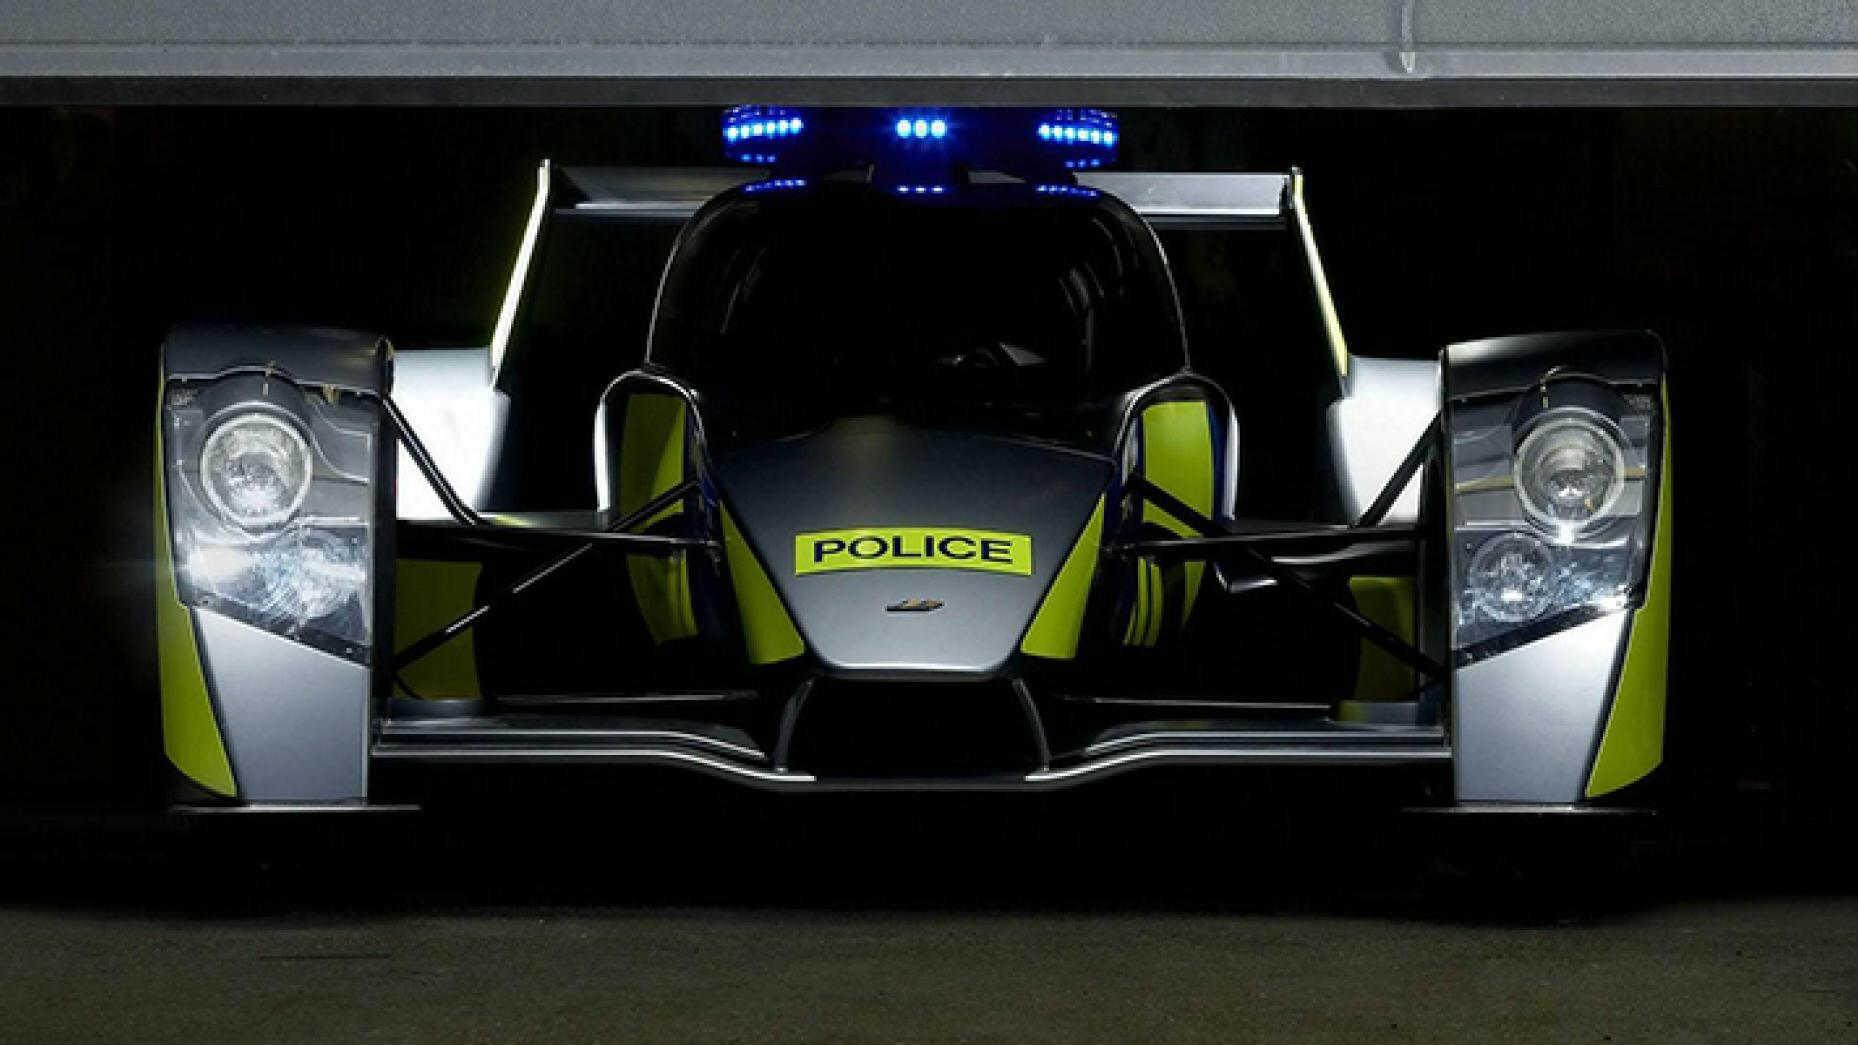 Gallery: the world's best police cars